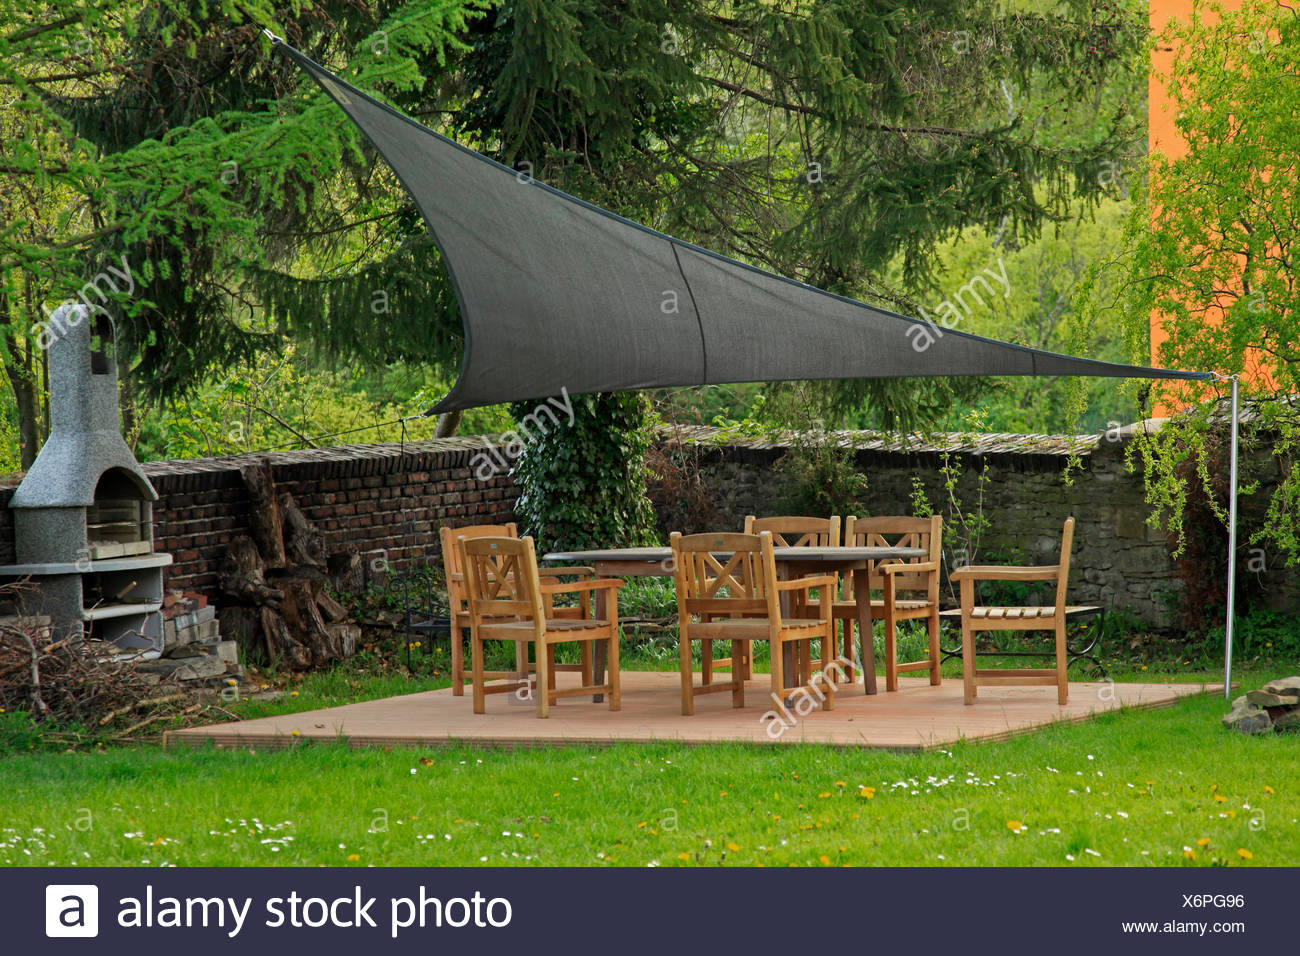 stretched awning over garden furnitures, Germany - Stock Image